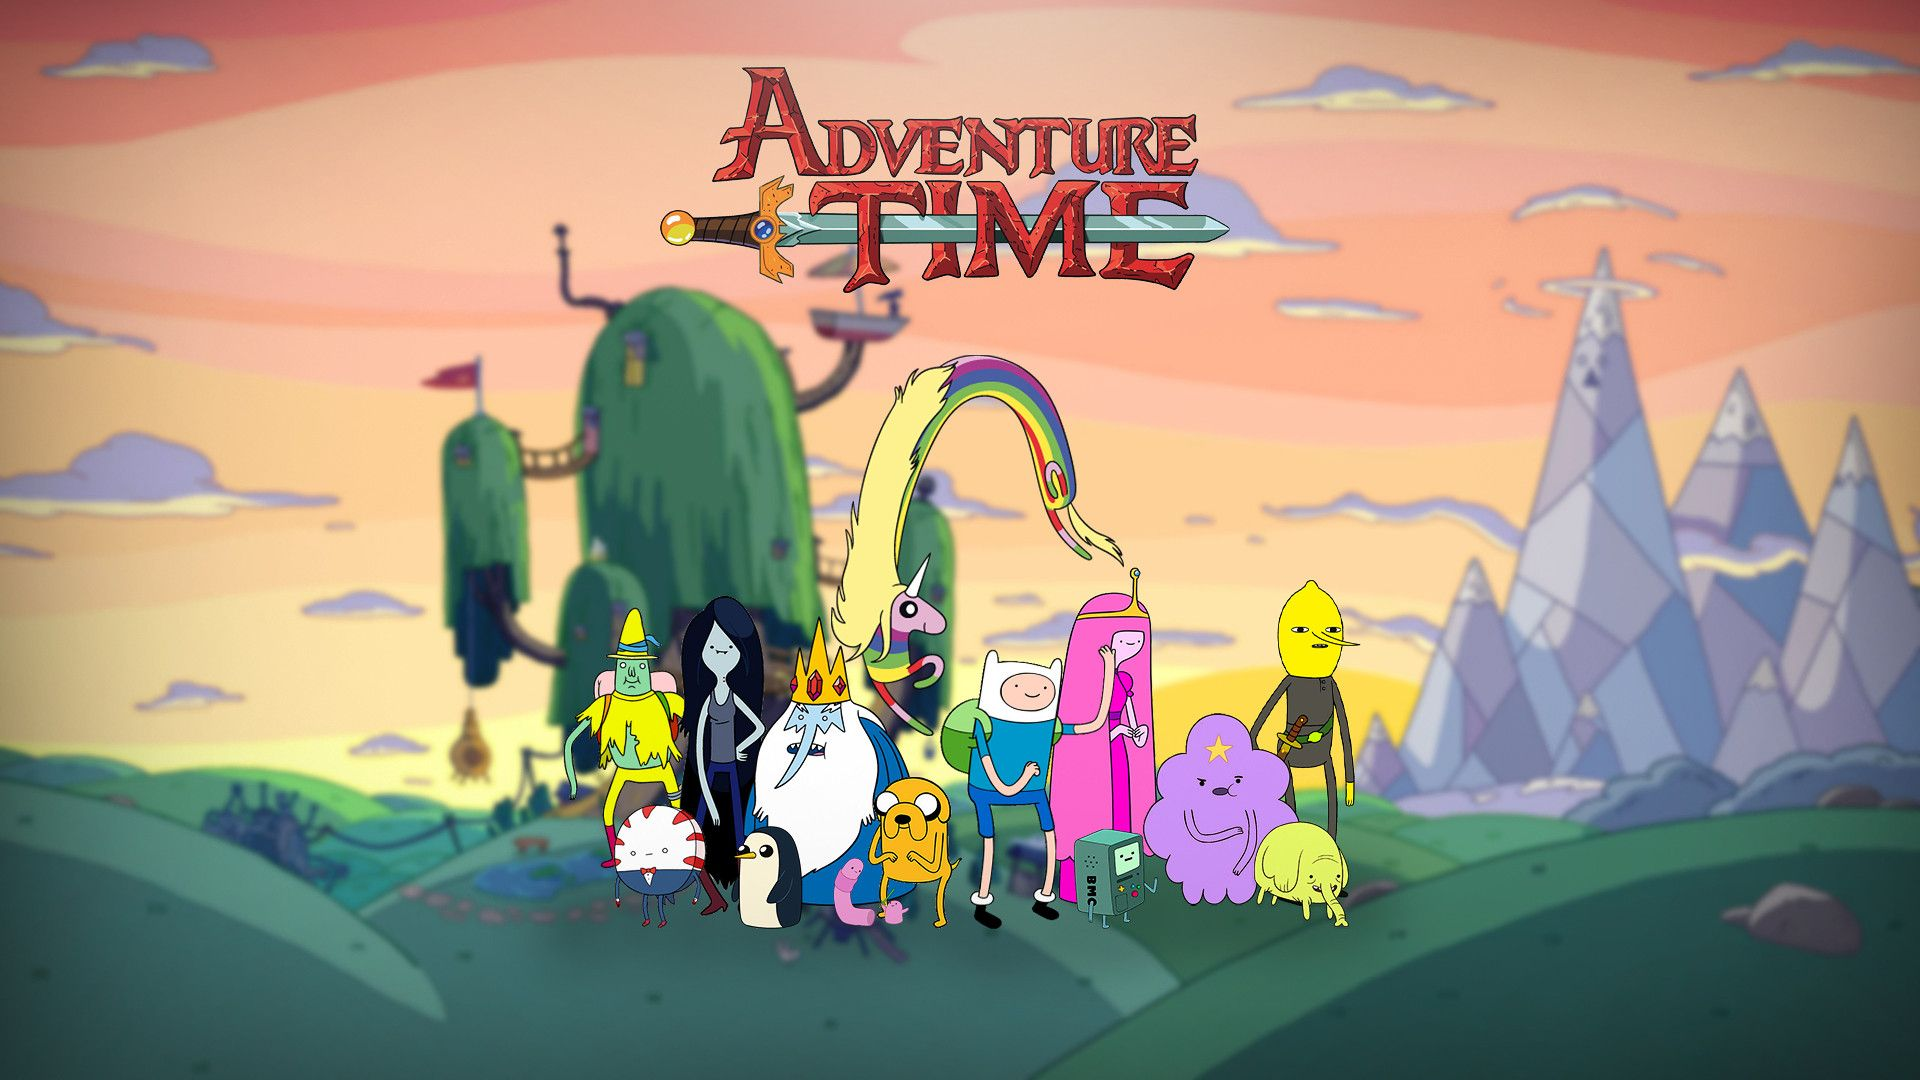 An Adventure Time Wallpaper I Made In 2020 Adventure Time Wallpaper Nerdy Wallpaper Adventure Time